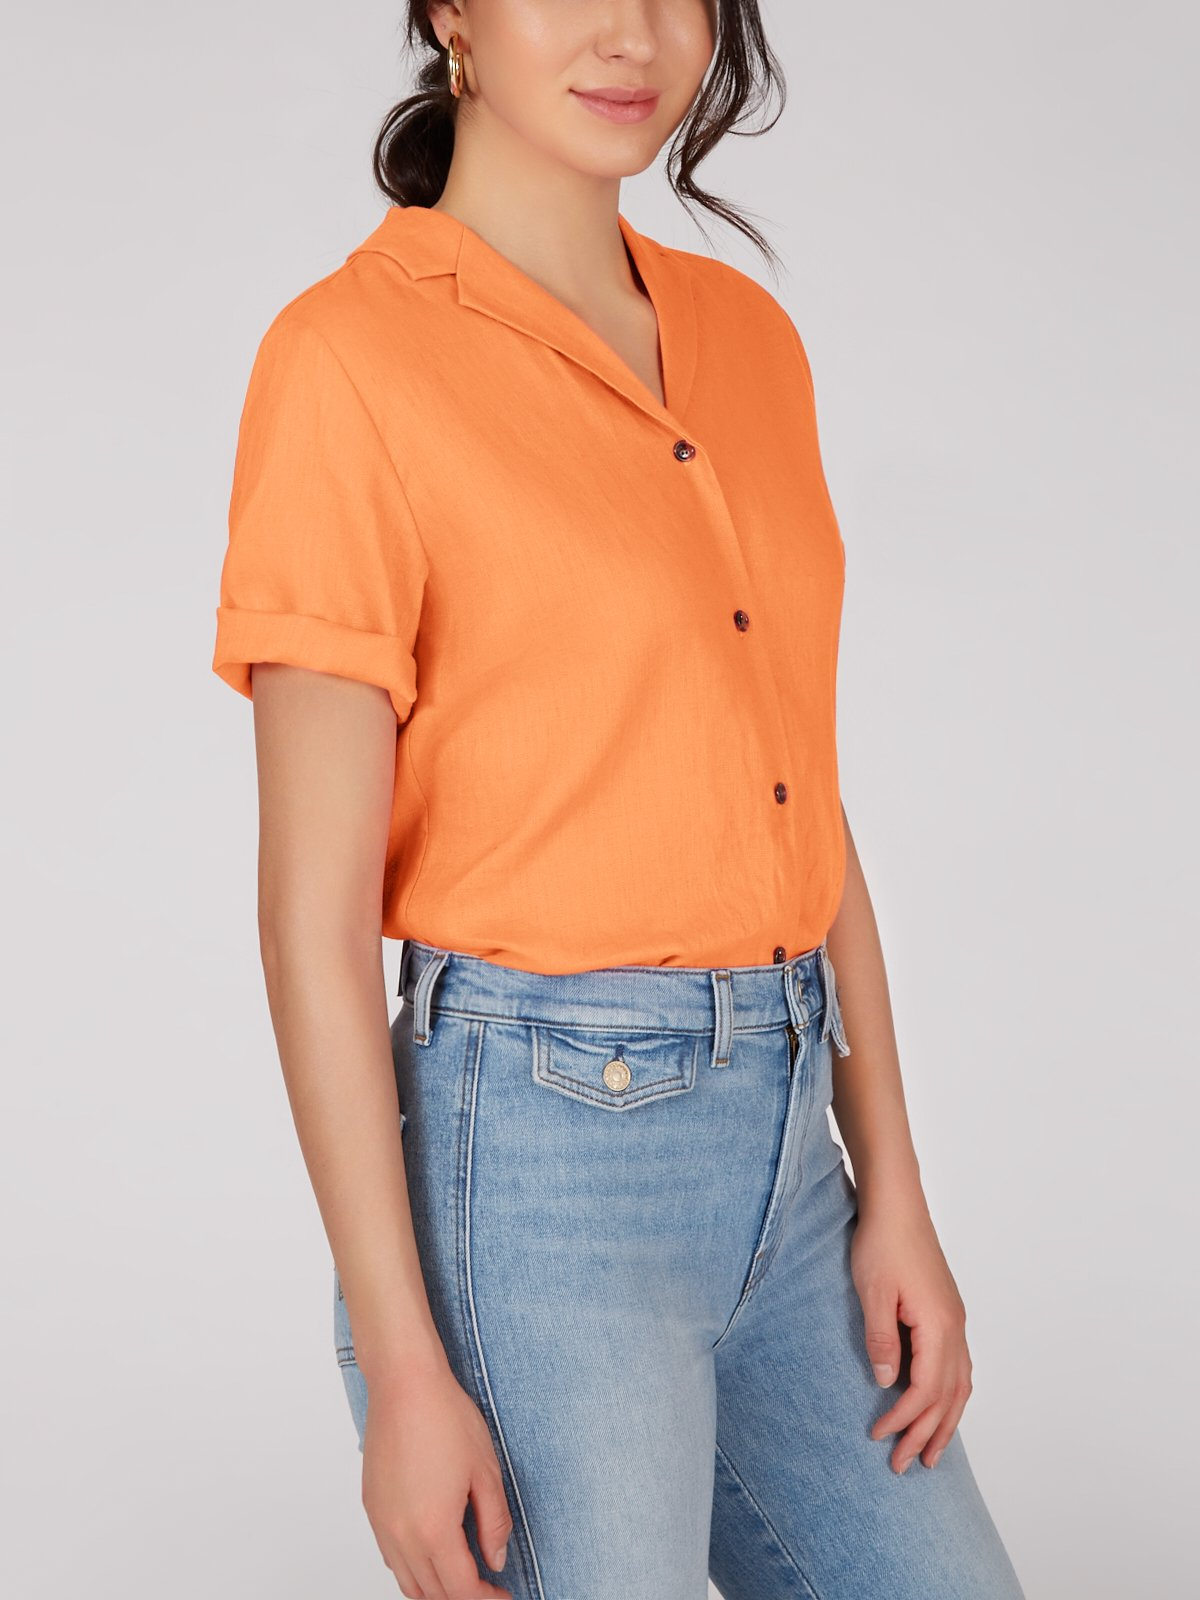 Camp Shirt - Orange Zest